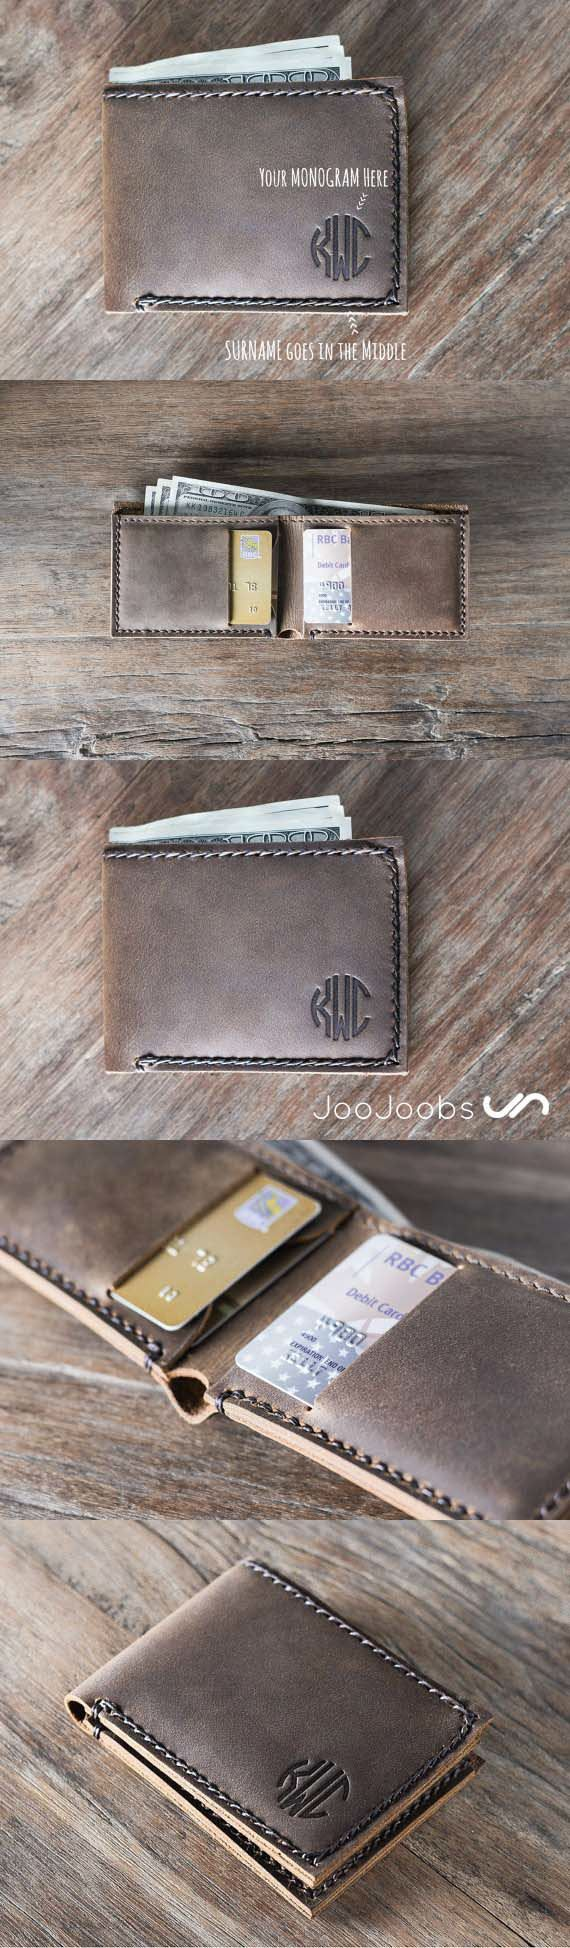 Awesome x 100 !! This wallet is the perfect gift idea. We hand make all our wallets with full grain distressed leather. This wallet, you get to tell us the initials of the gift recipient and we brand them into the leather. You are guaranteed to love this wallet as it will draw many compliments and last a lifetime. #JooJoobs #Quality #Craftmanship #Monogrammed